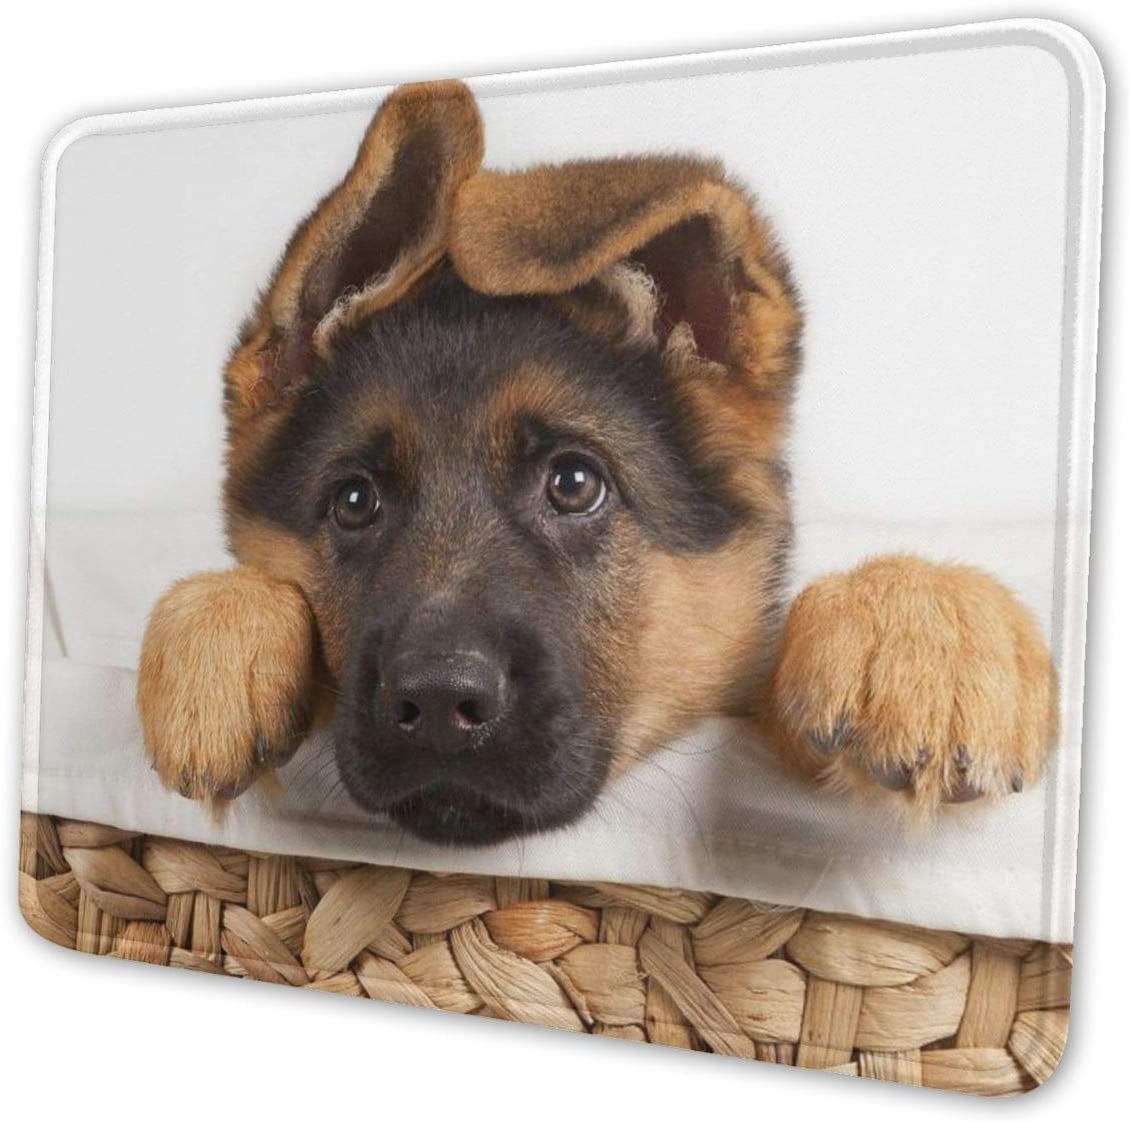 Lovely Dog German Shepherd Mouse Pad with Stitched Edge, Premium-Textured Mouse Mat, Non-Slip Rubber Base Mousepad for Laptop, Computer & PC, 10.3x8.3x0.03 inch